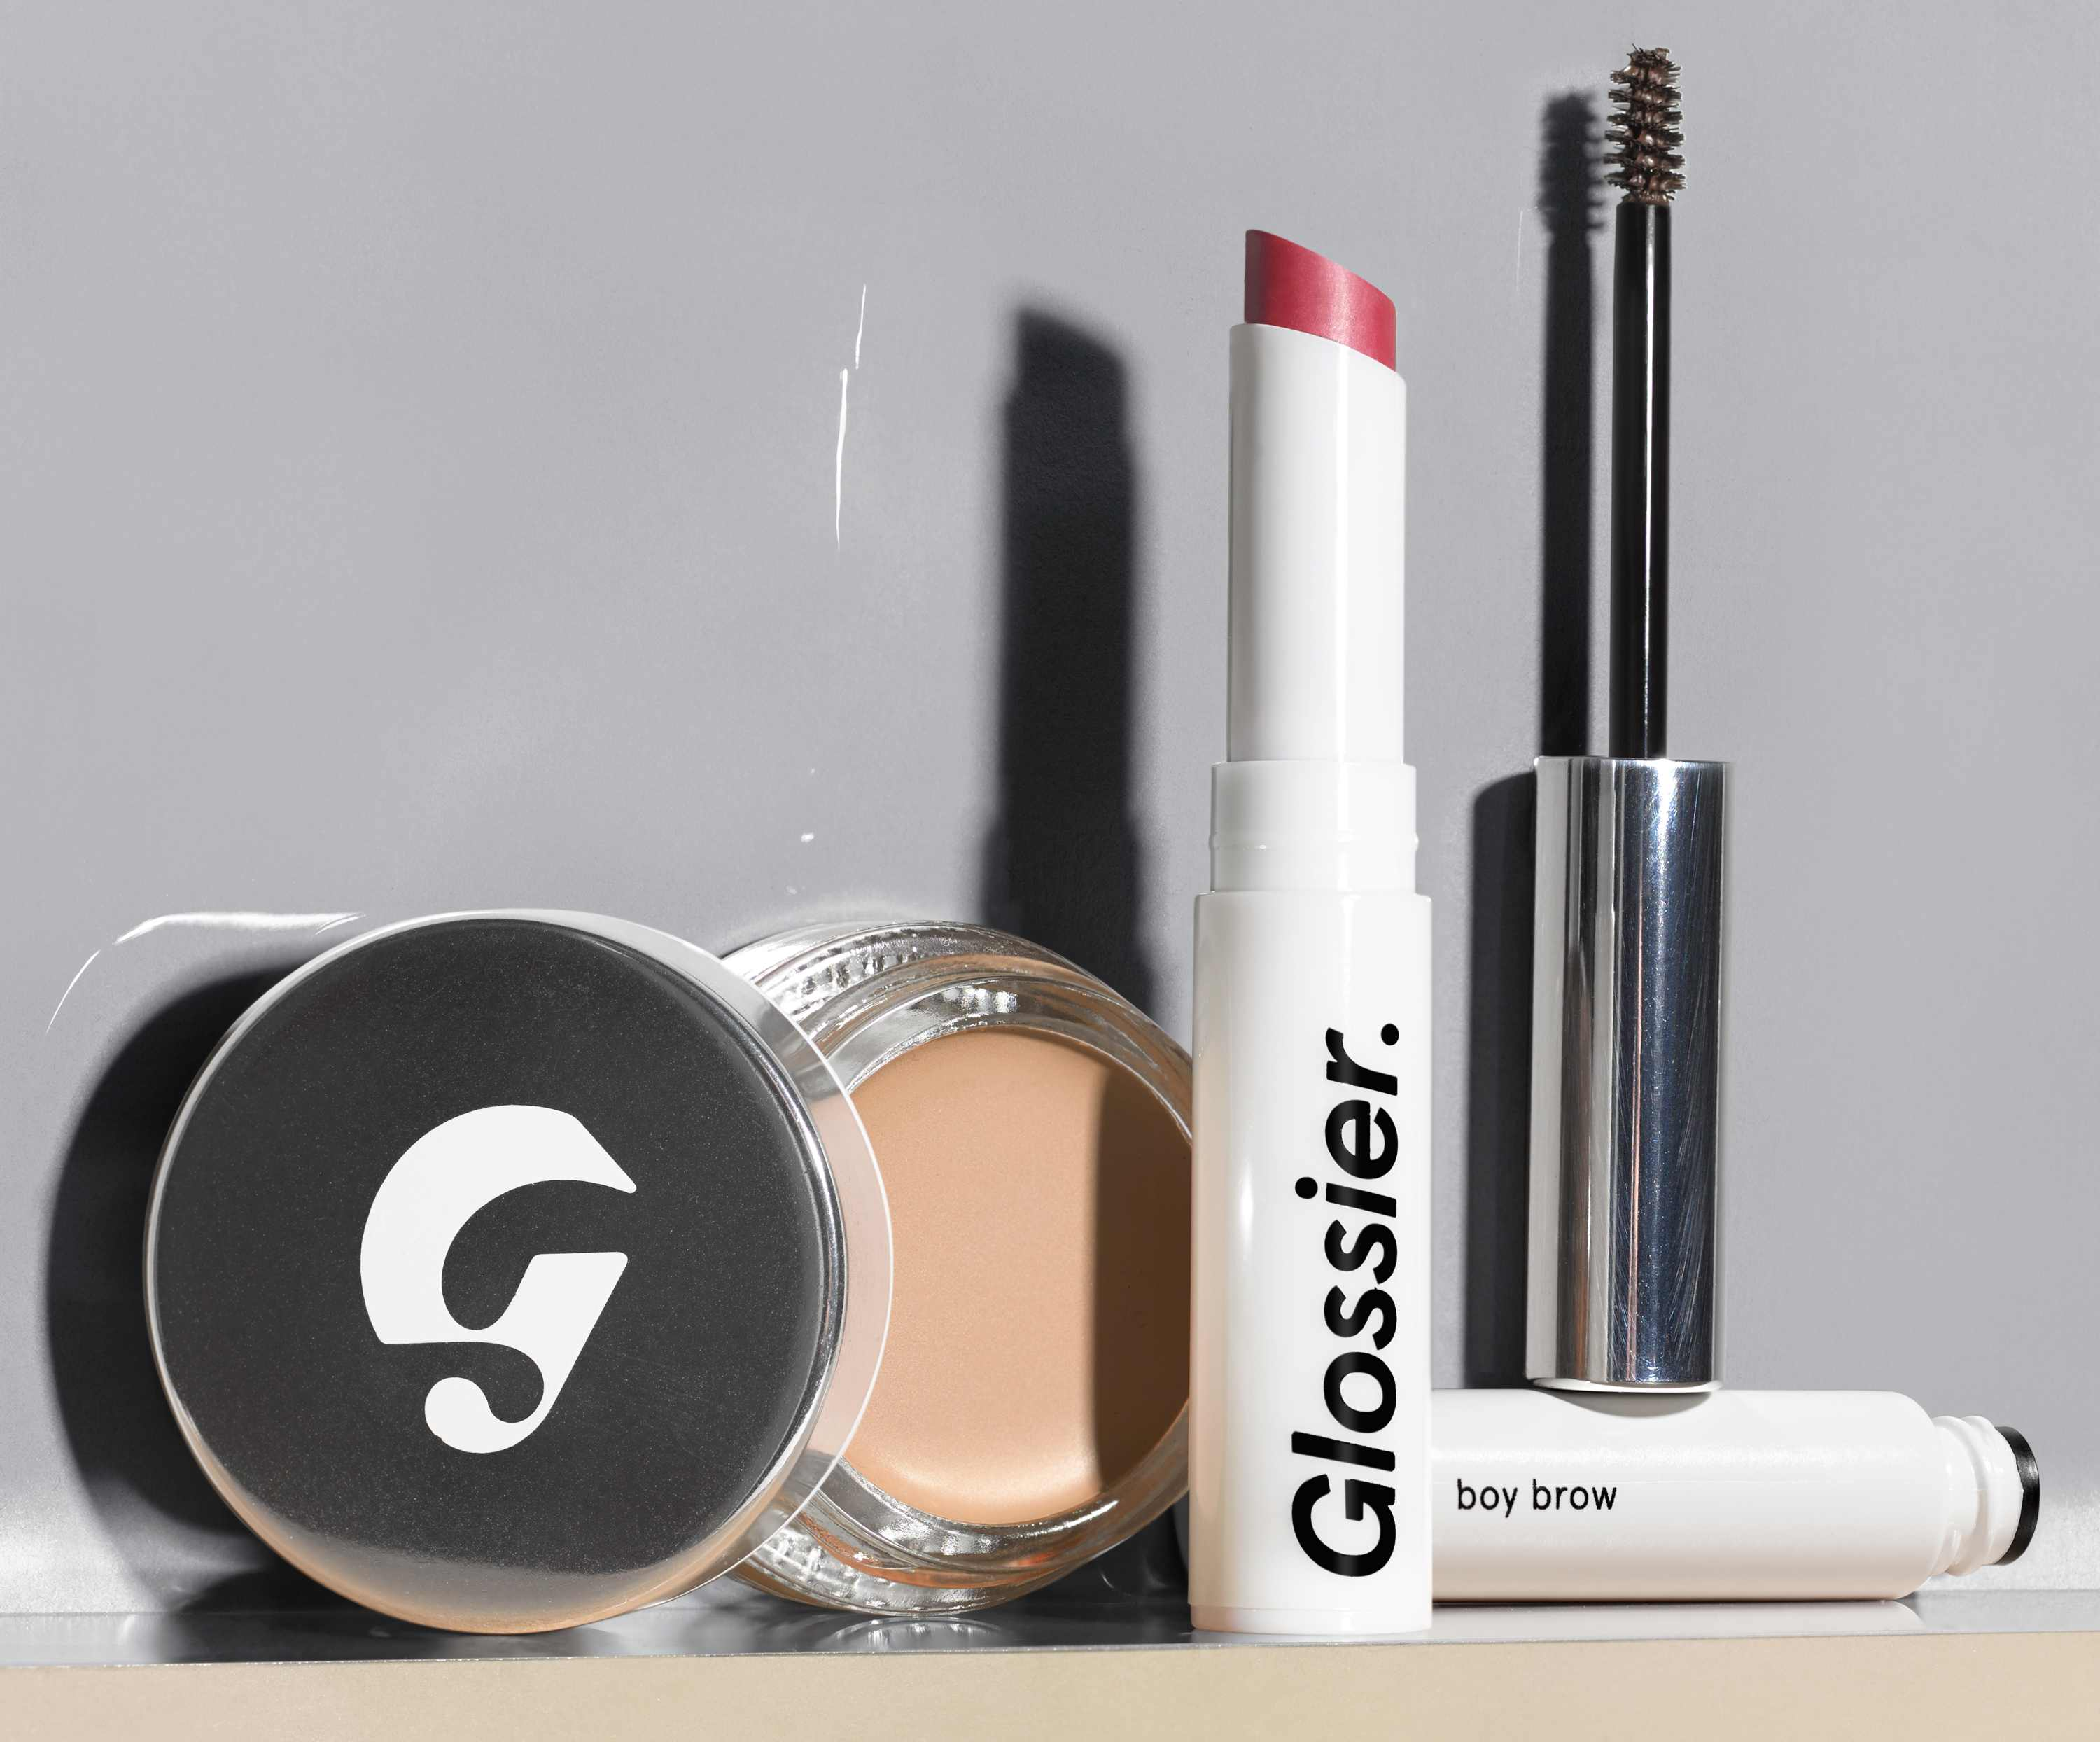 Four make-up products from Glossier